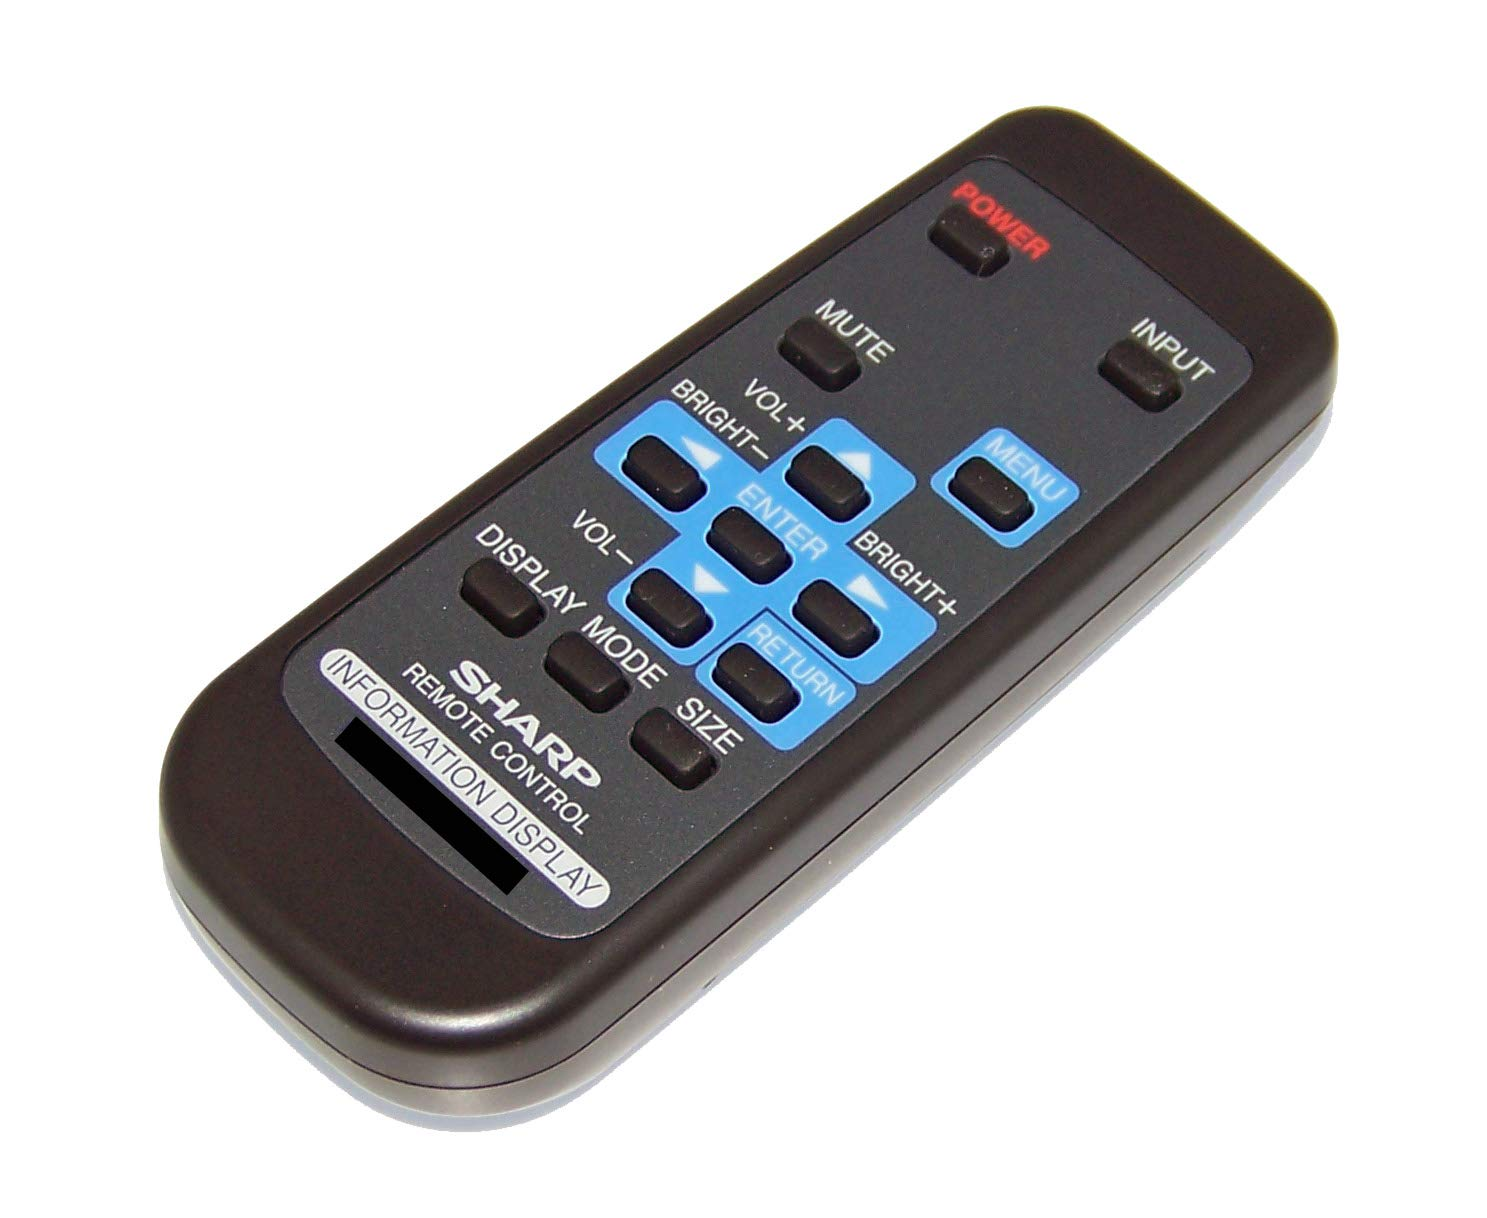 OEM Sharp Remote Control Originally Shipped with PNE603, PN-E603, PNE703, PN-E703, PNH701, PN-H701 by Sharp